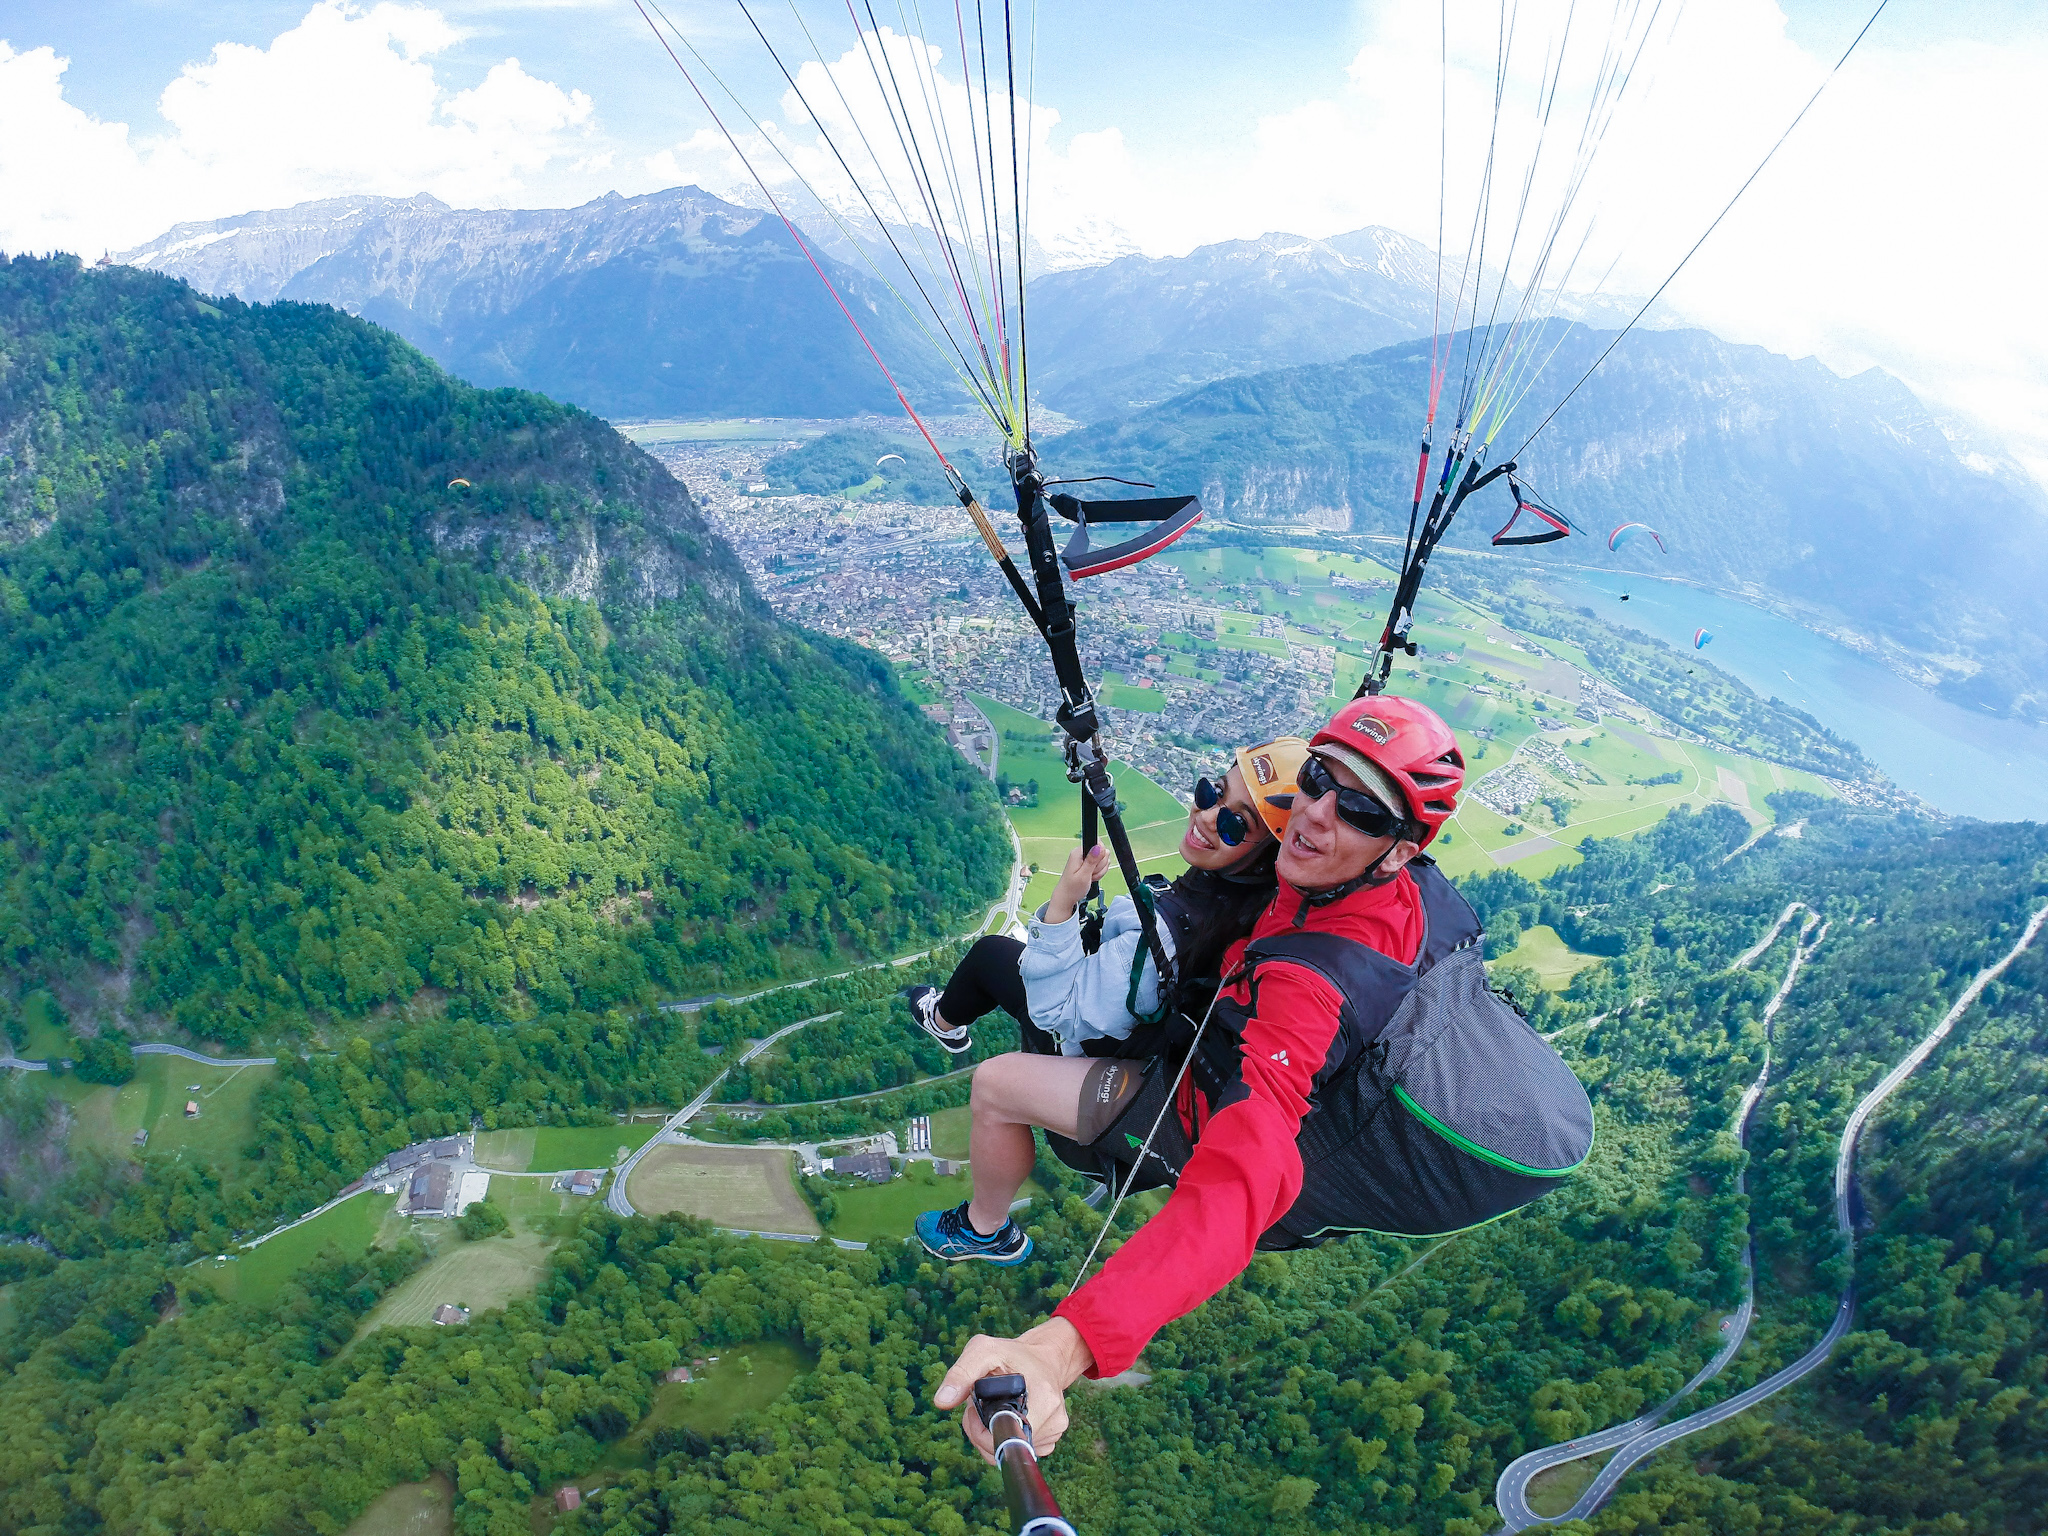 Qanetha Ahmed taking a break from studying for MCAT exams to go paragliding in the Swiss Alps